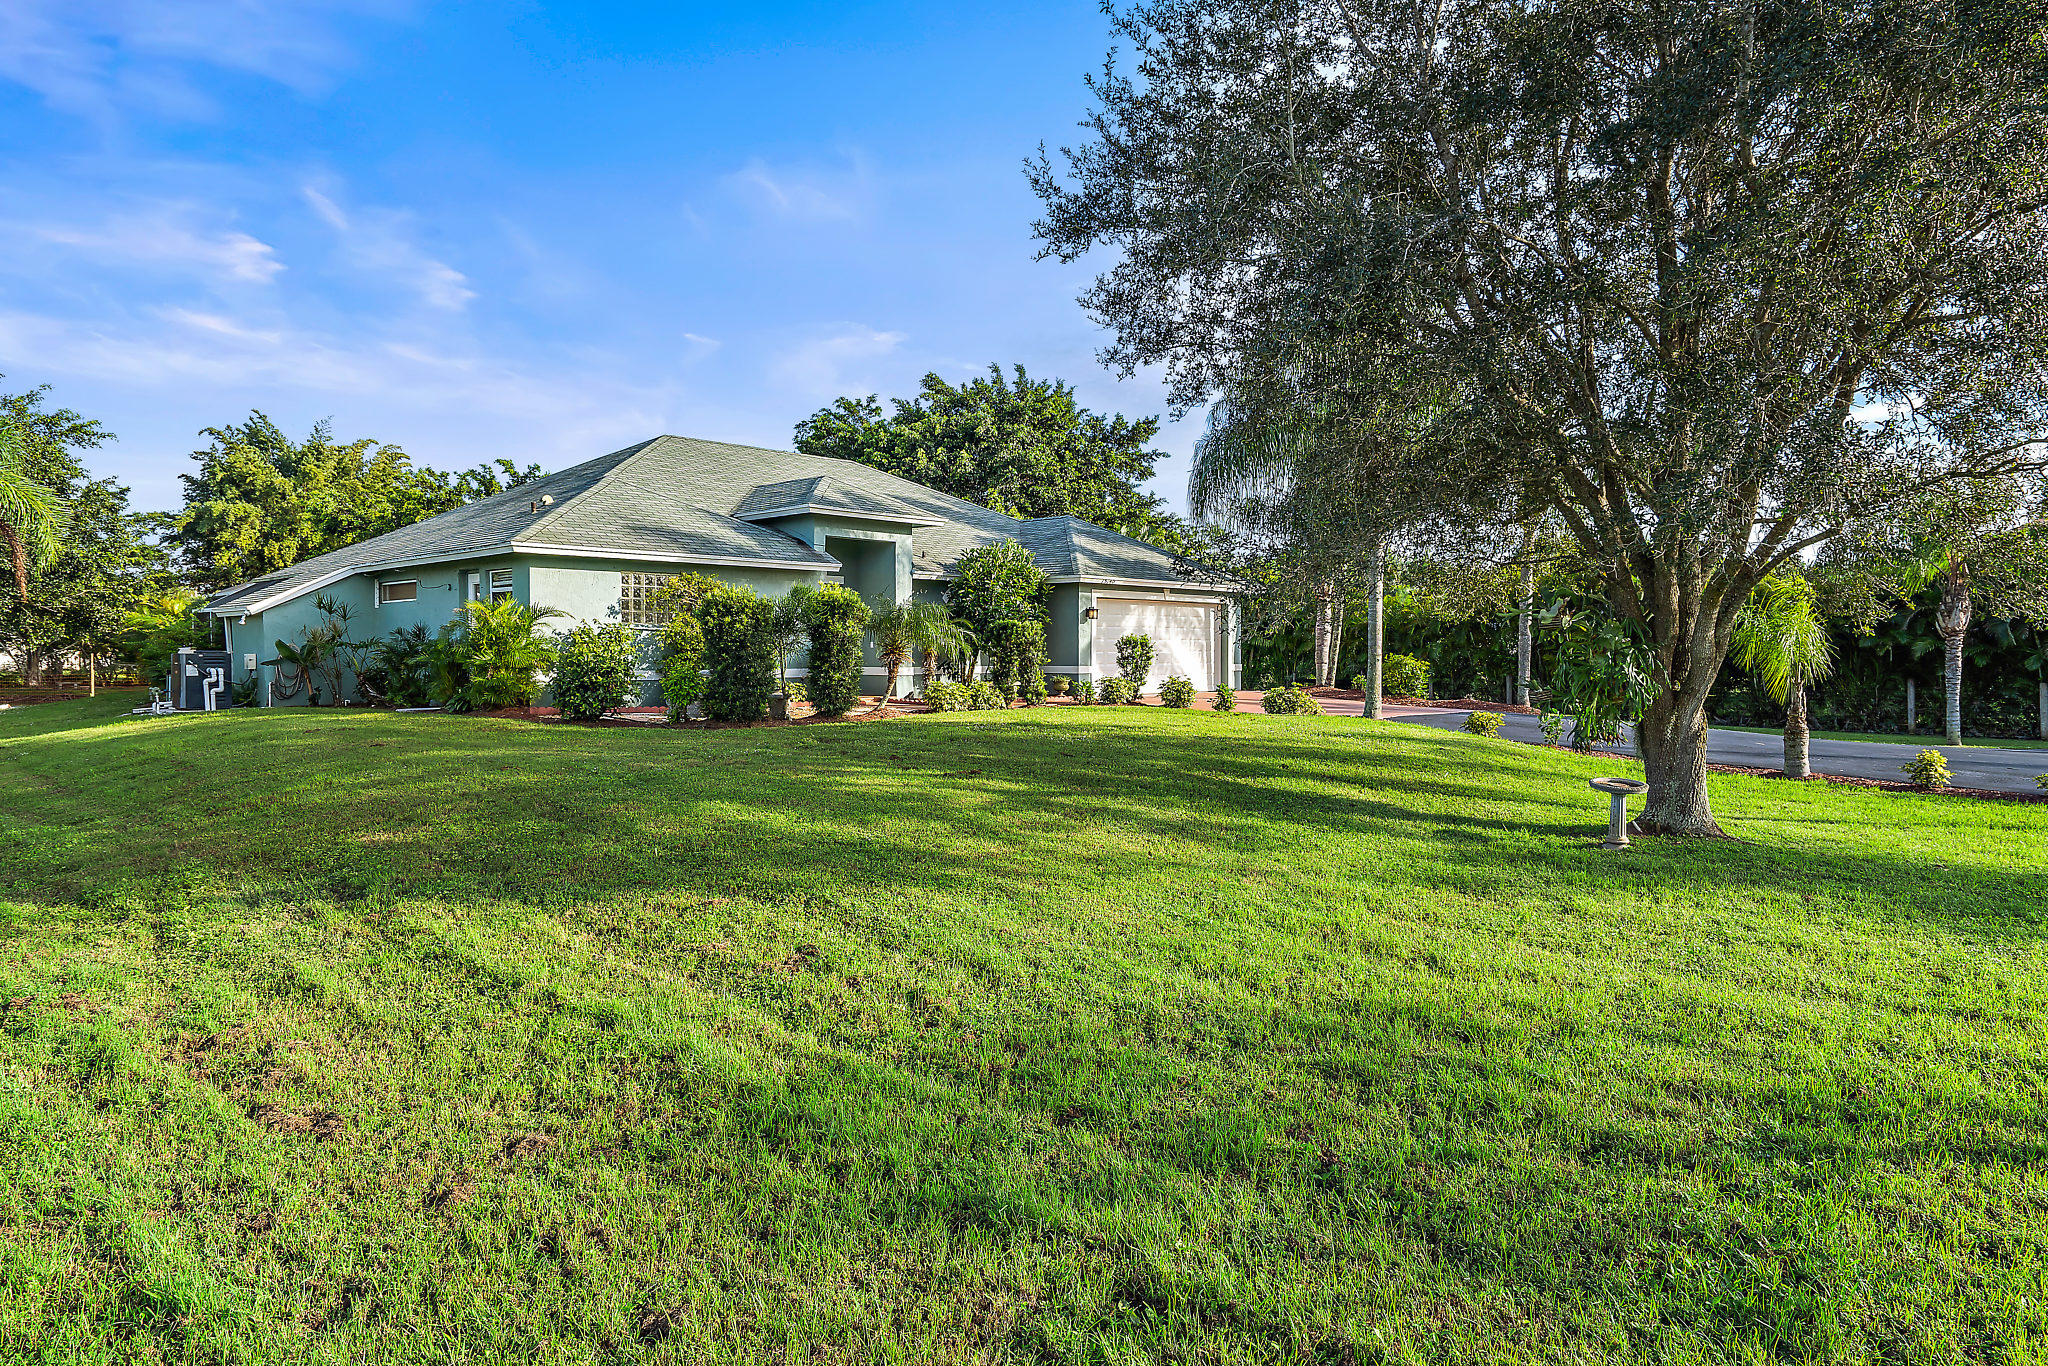 New Home for sale at 15140 98th Trail in Jupiter